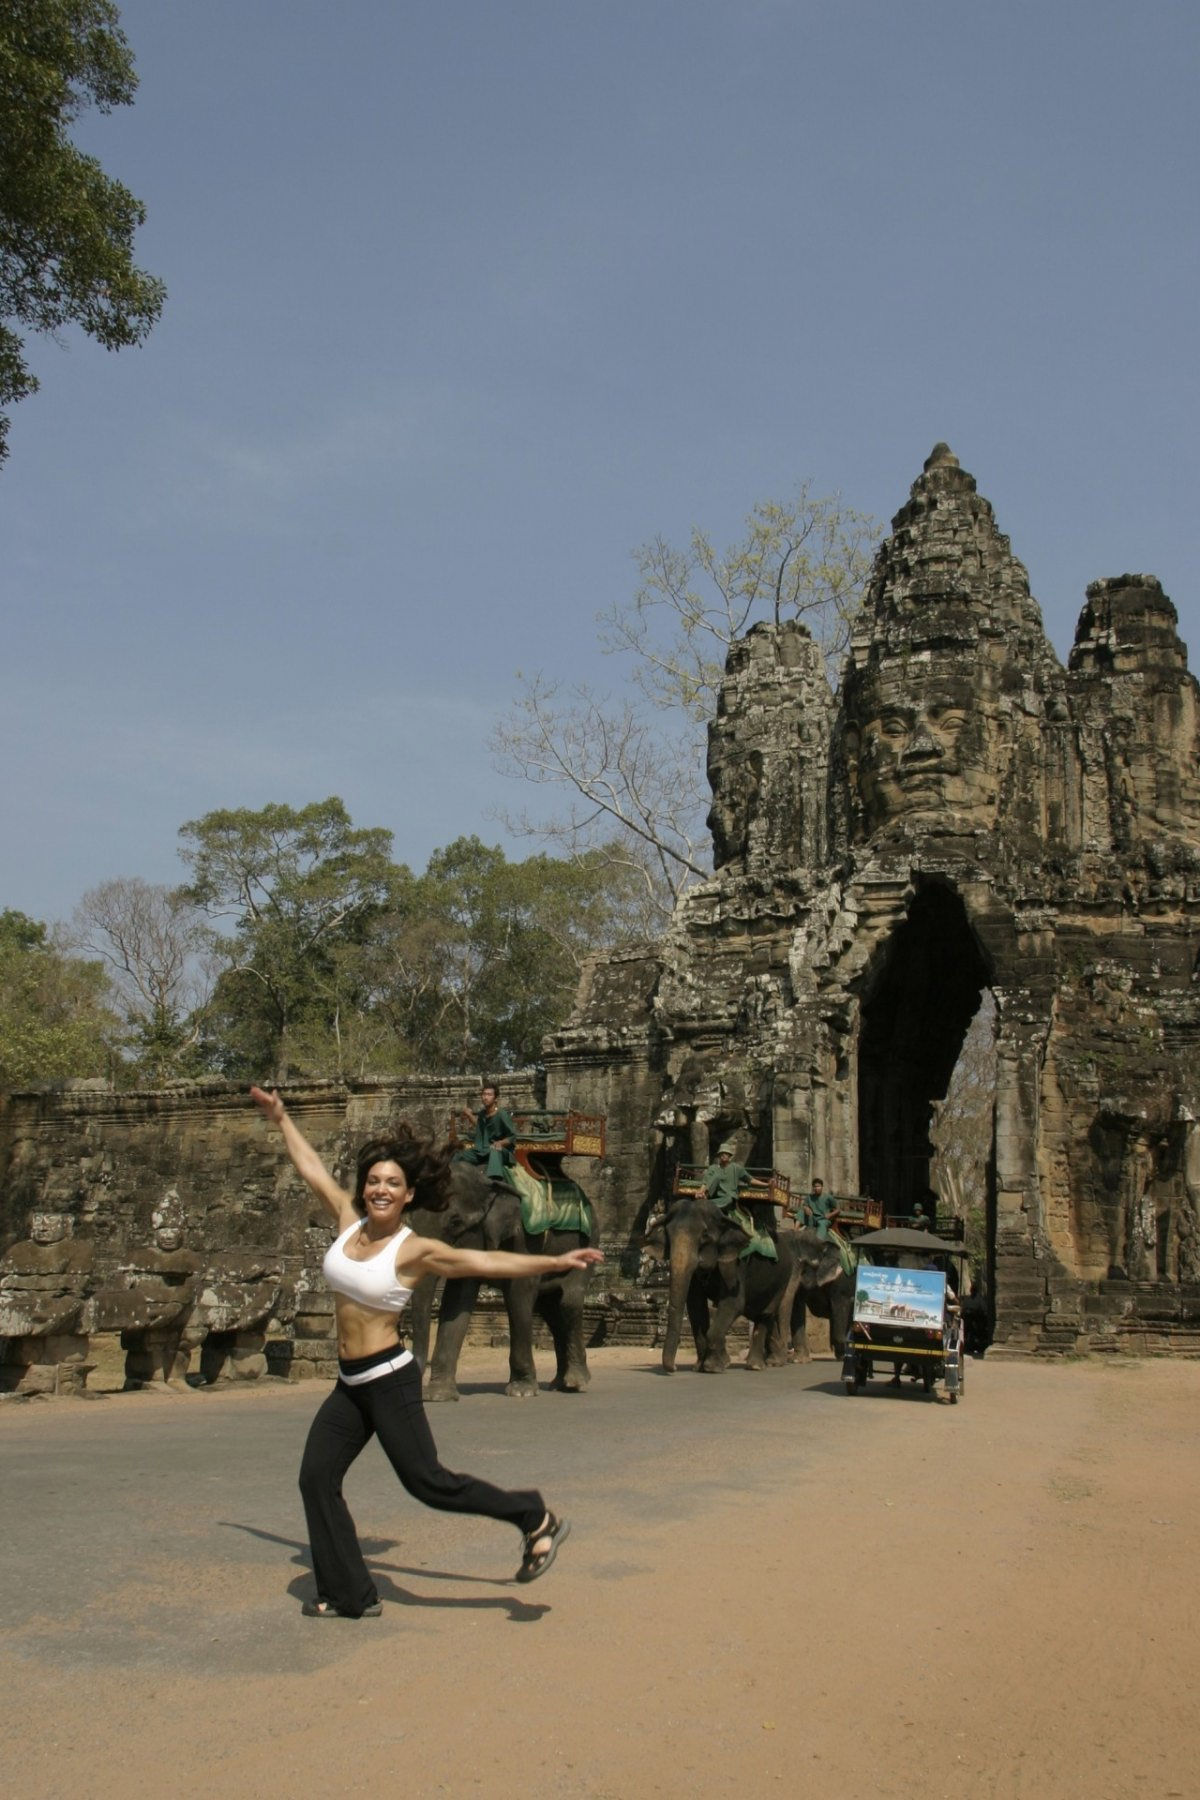 cat-jumping-i-f-o-gate-cambodia10-23-2011